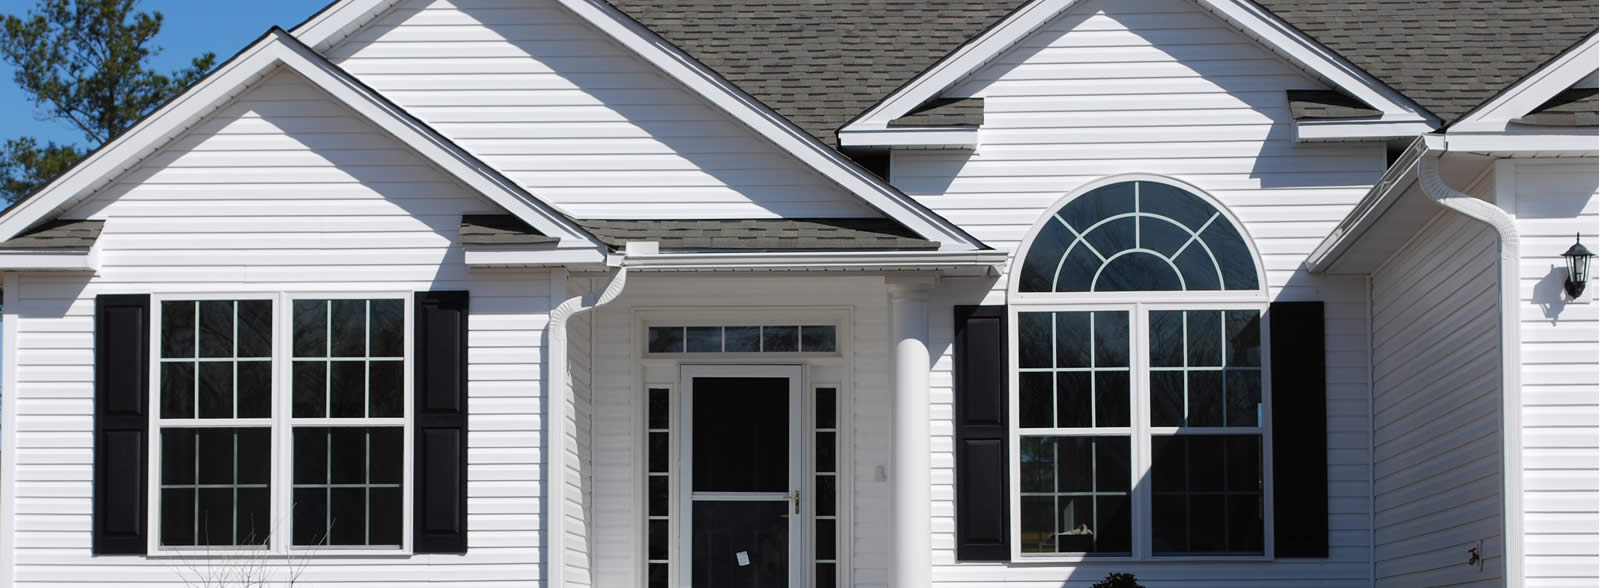 Superior Exterior Home Improvement Services. From Vinyl Siding In Kansas  City ...